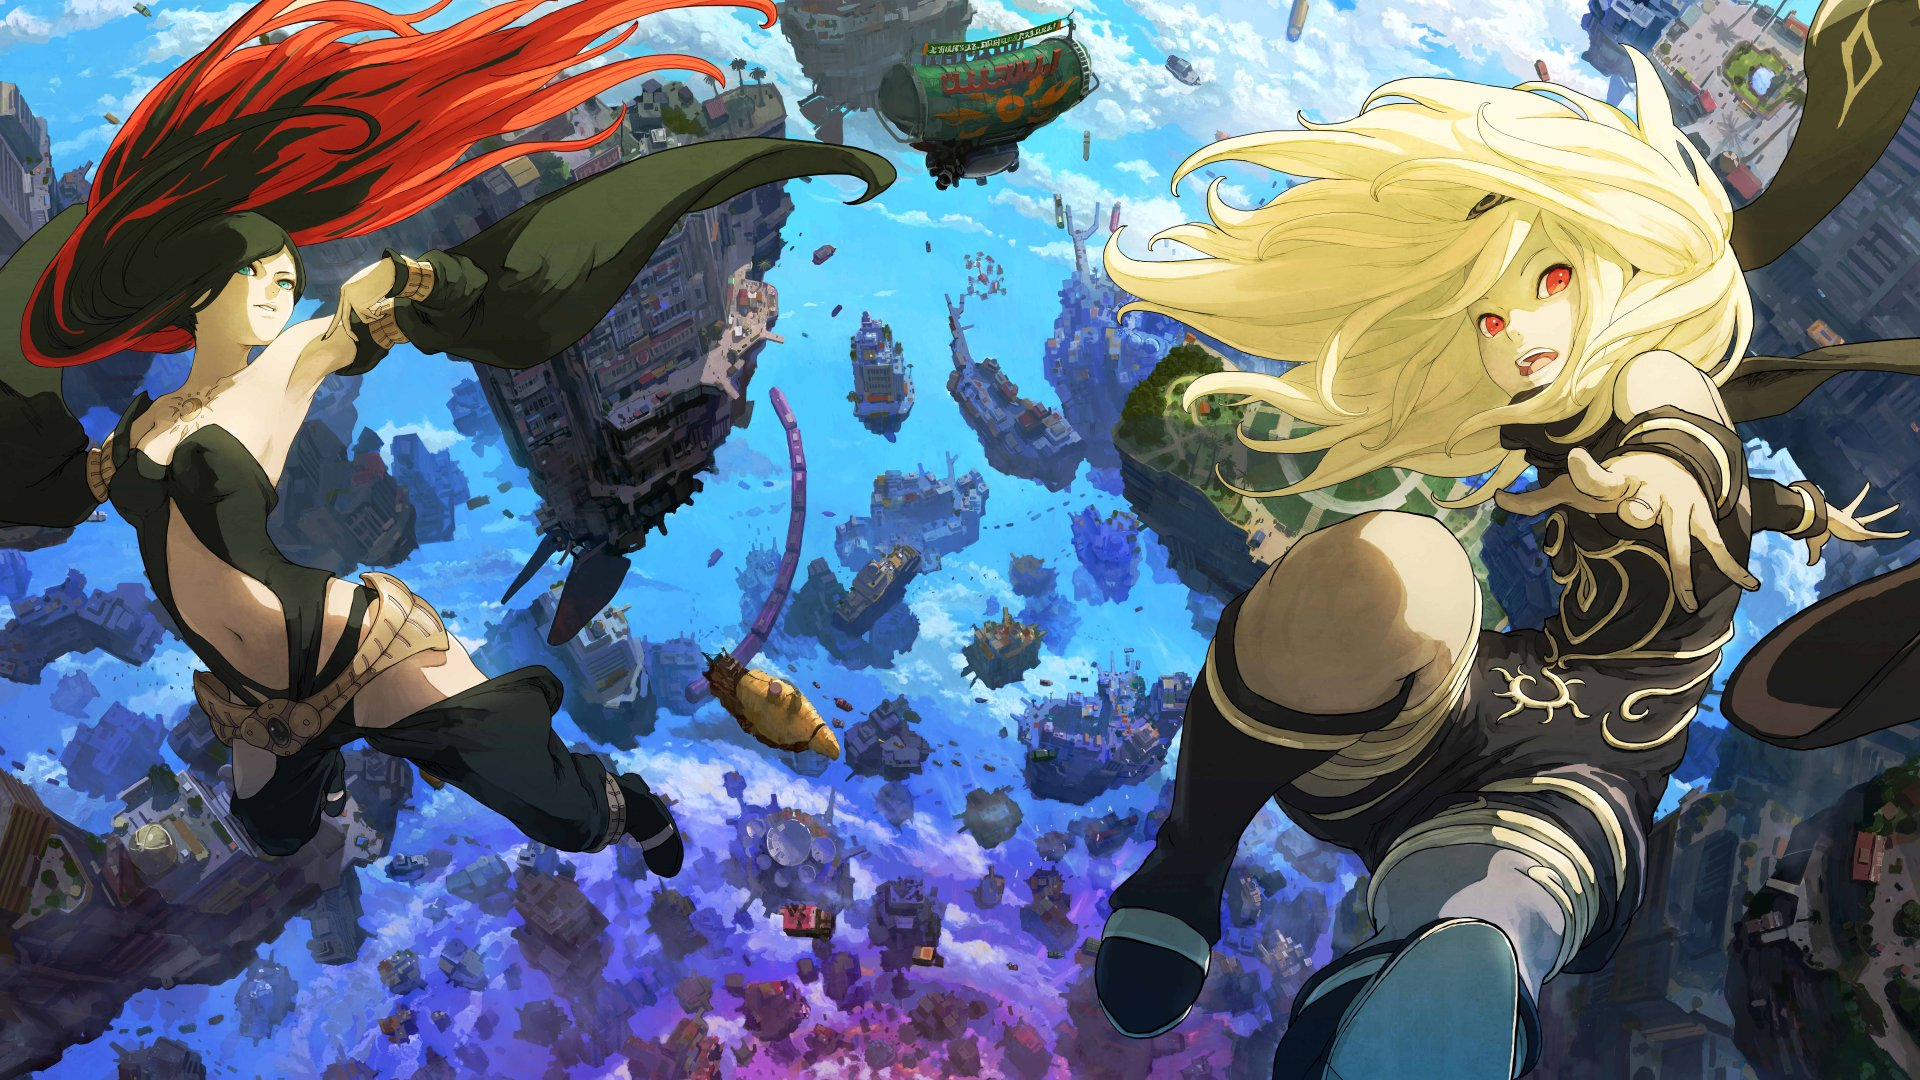 Gravity Rush is criminally underrated